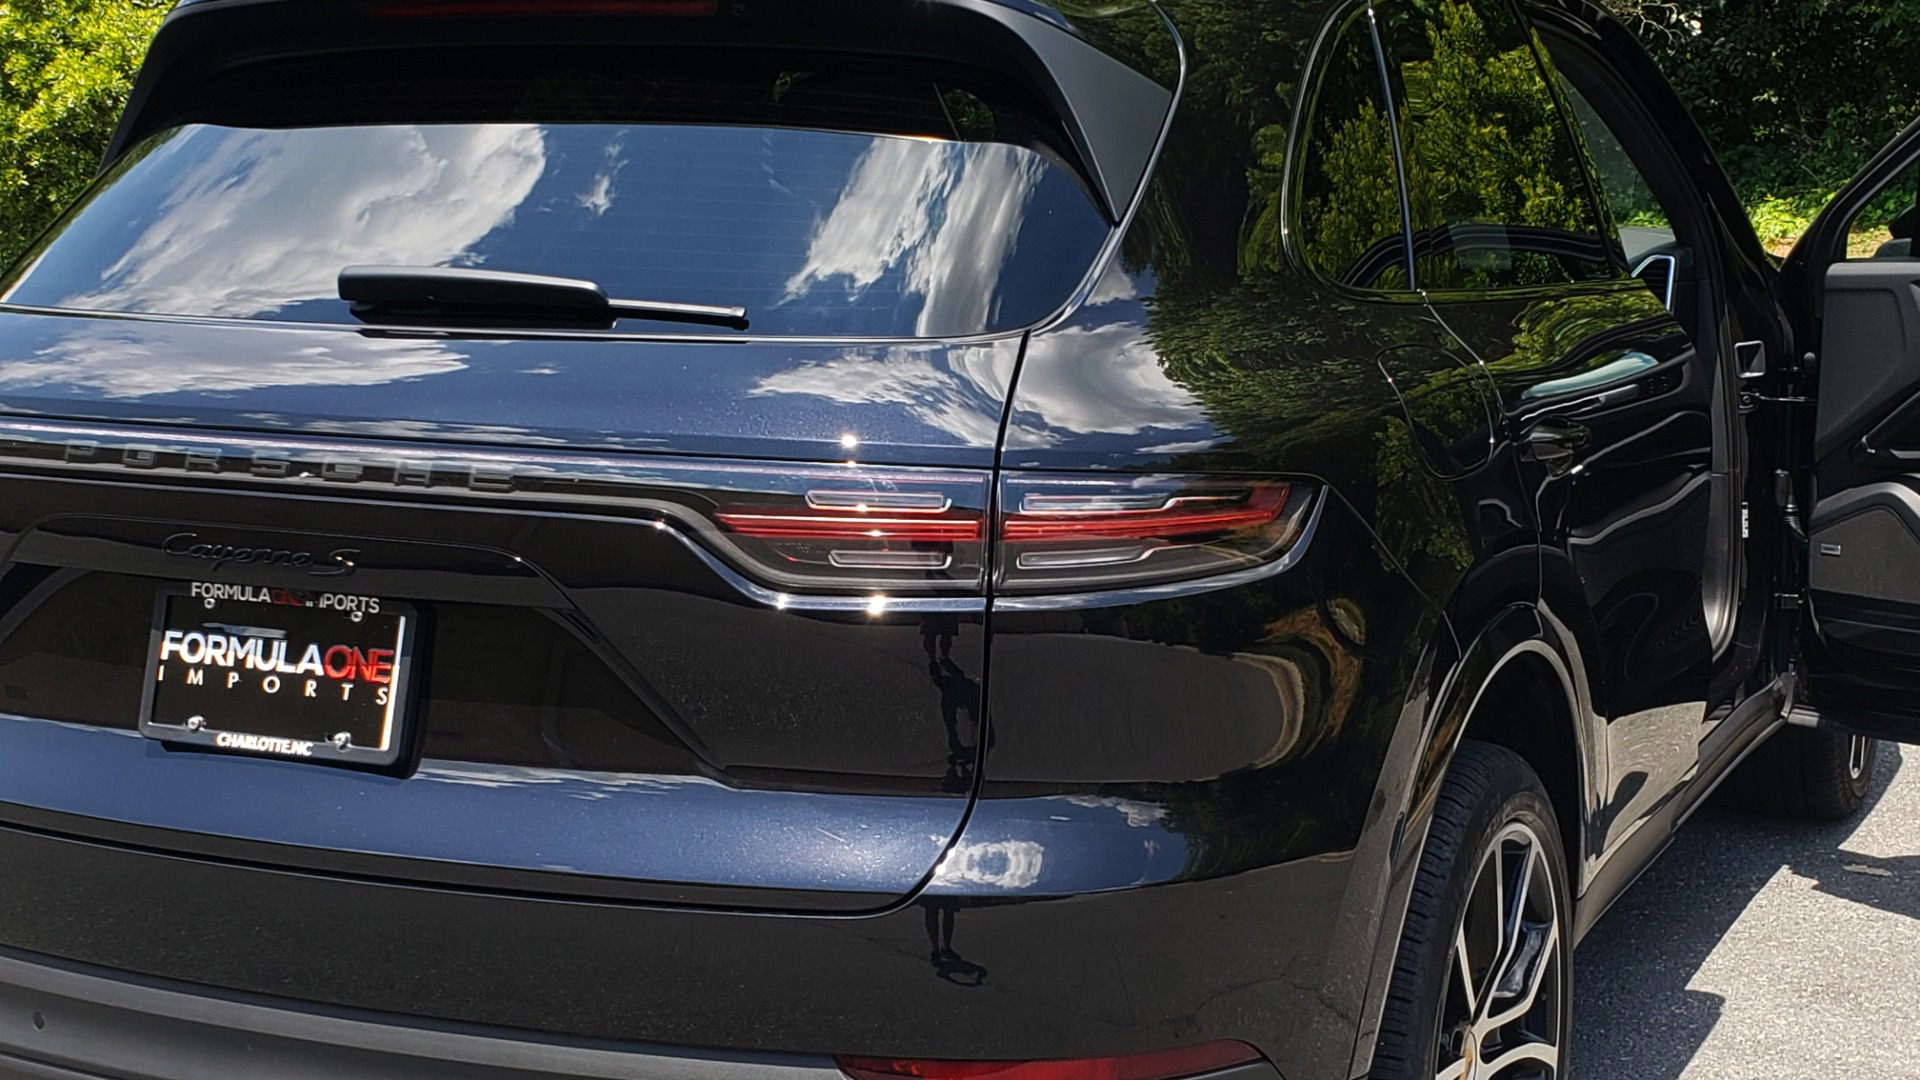 Used 2019 Porsche CAYENNE S AWD / NAV / SUNROOF / BOSE / REARVIEW / LOW MILES for sale Sold at Formula Imports in Charlotte NC 28227 37